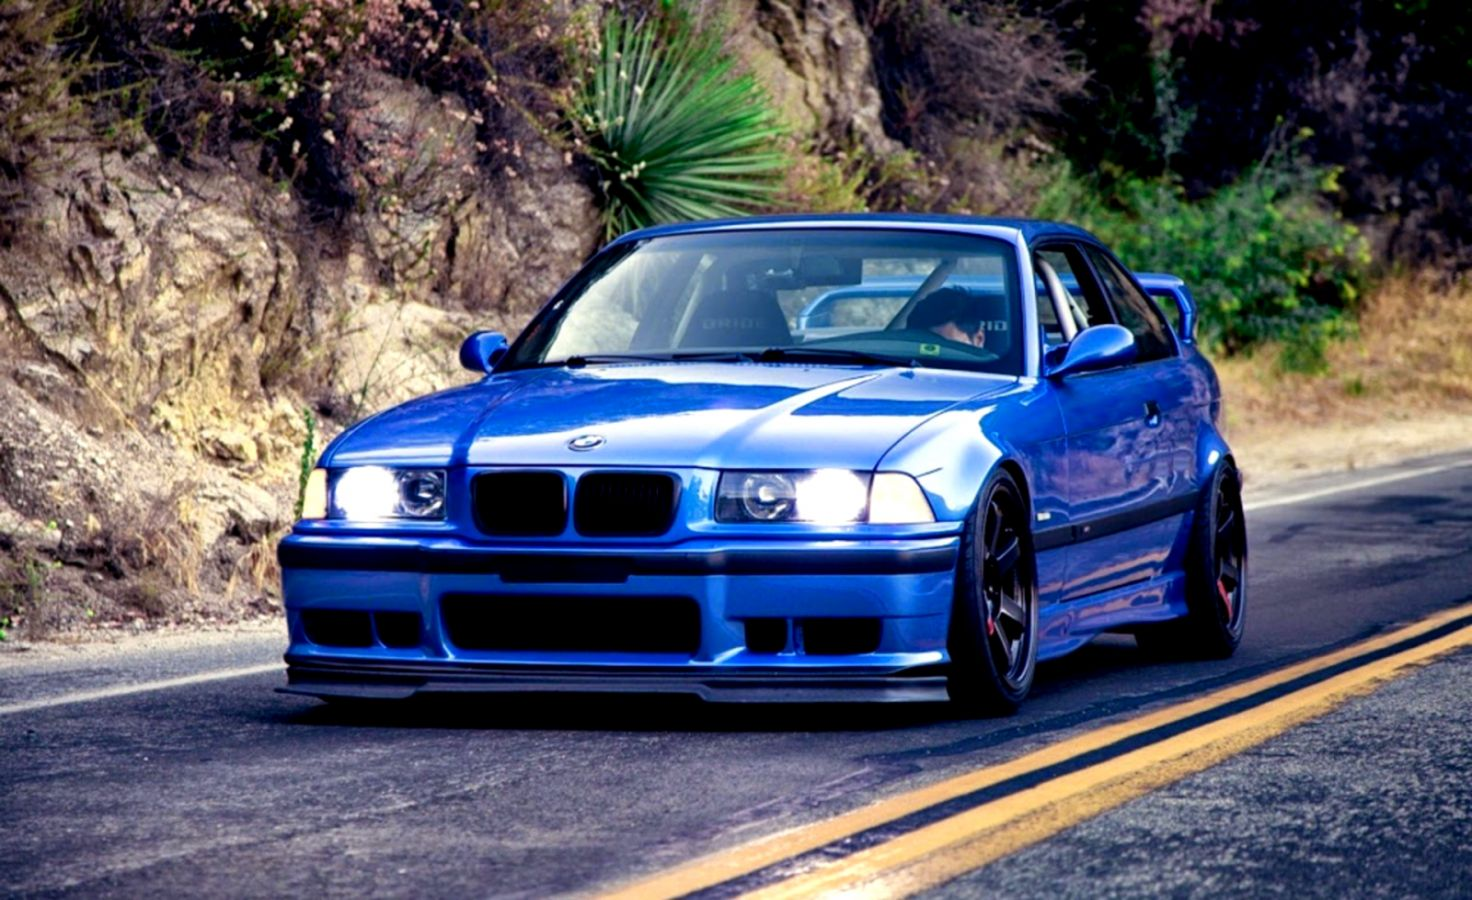 BMW E36 Wallpapers   Top BMW E36 Backgrounds   WallpaperAccess 1472x900